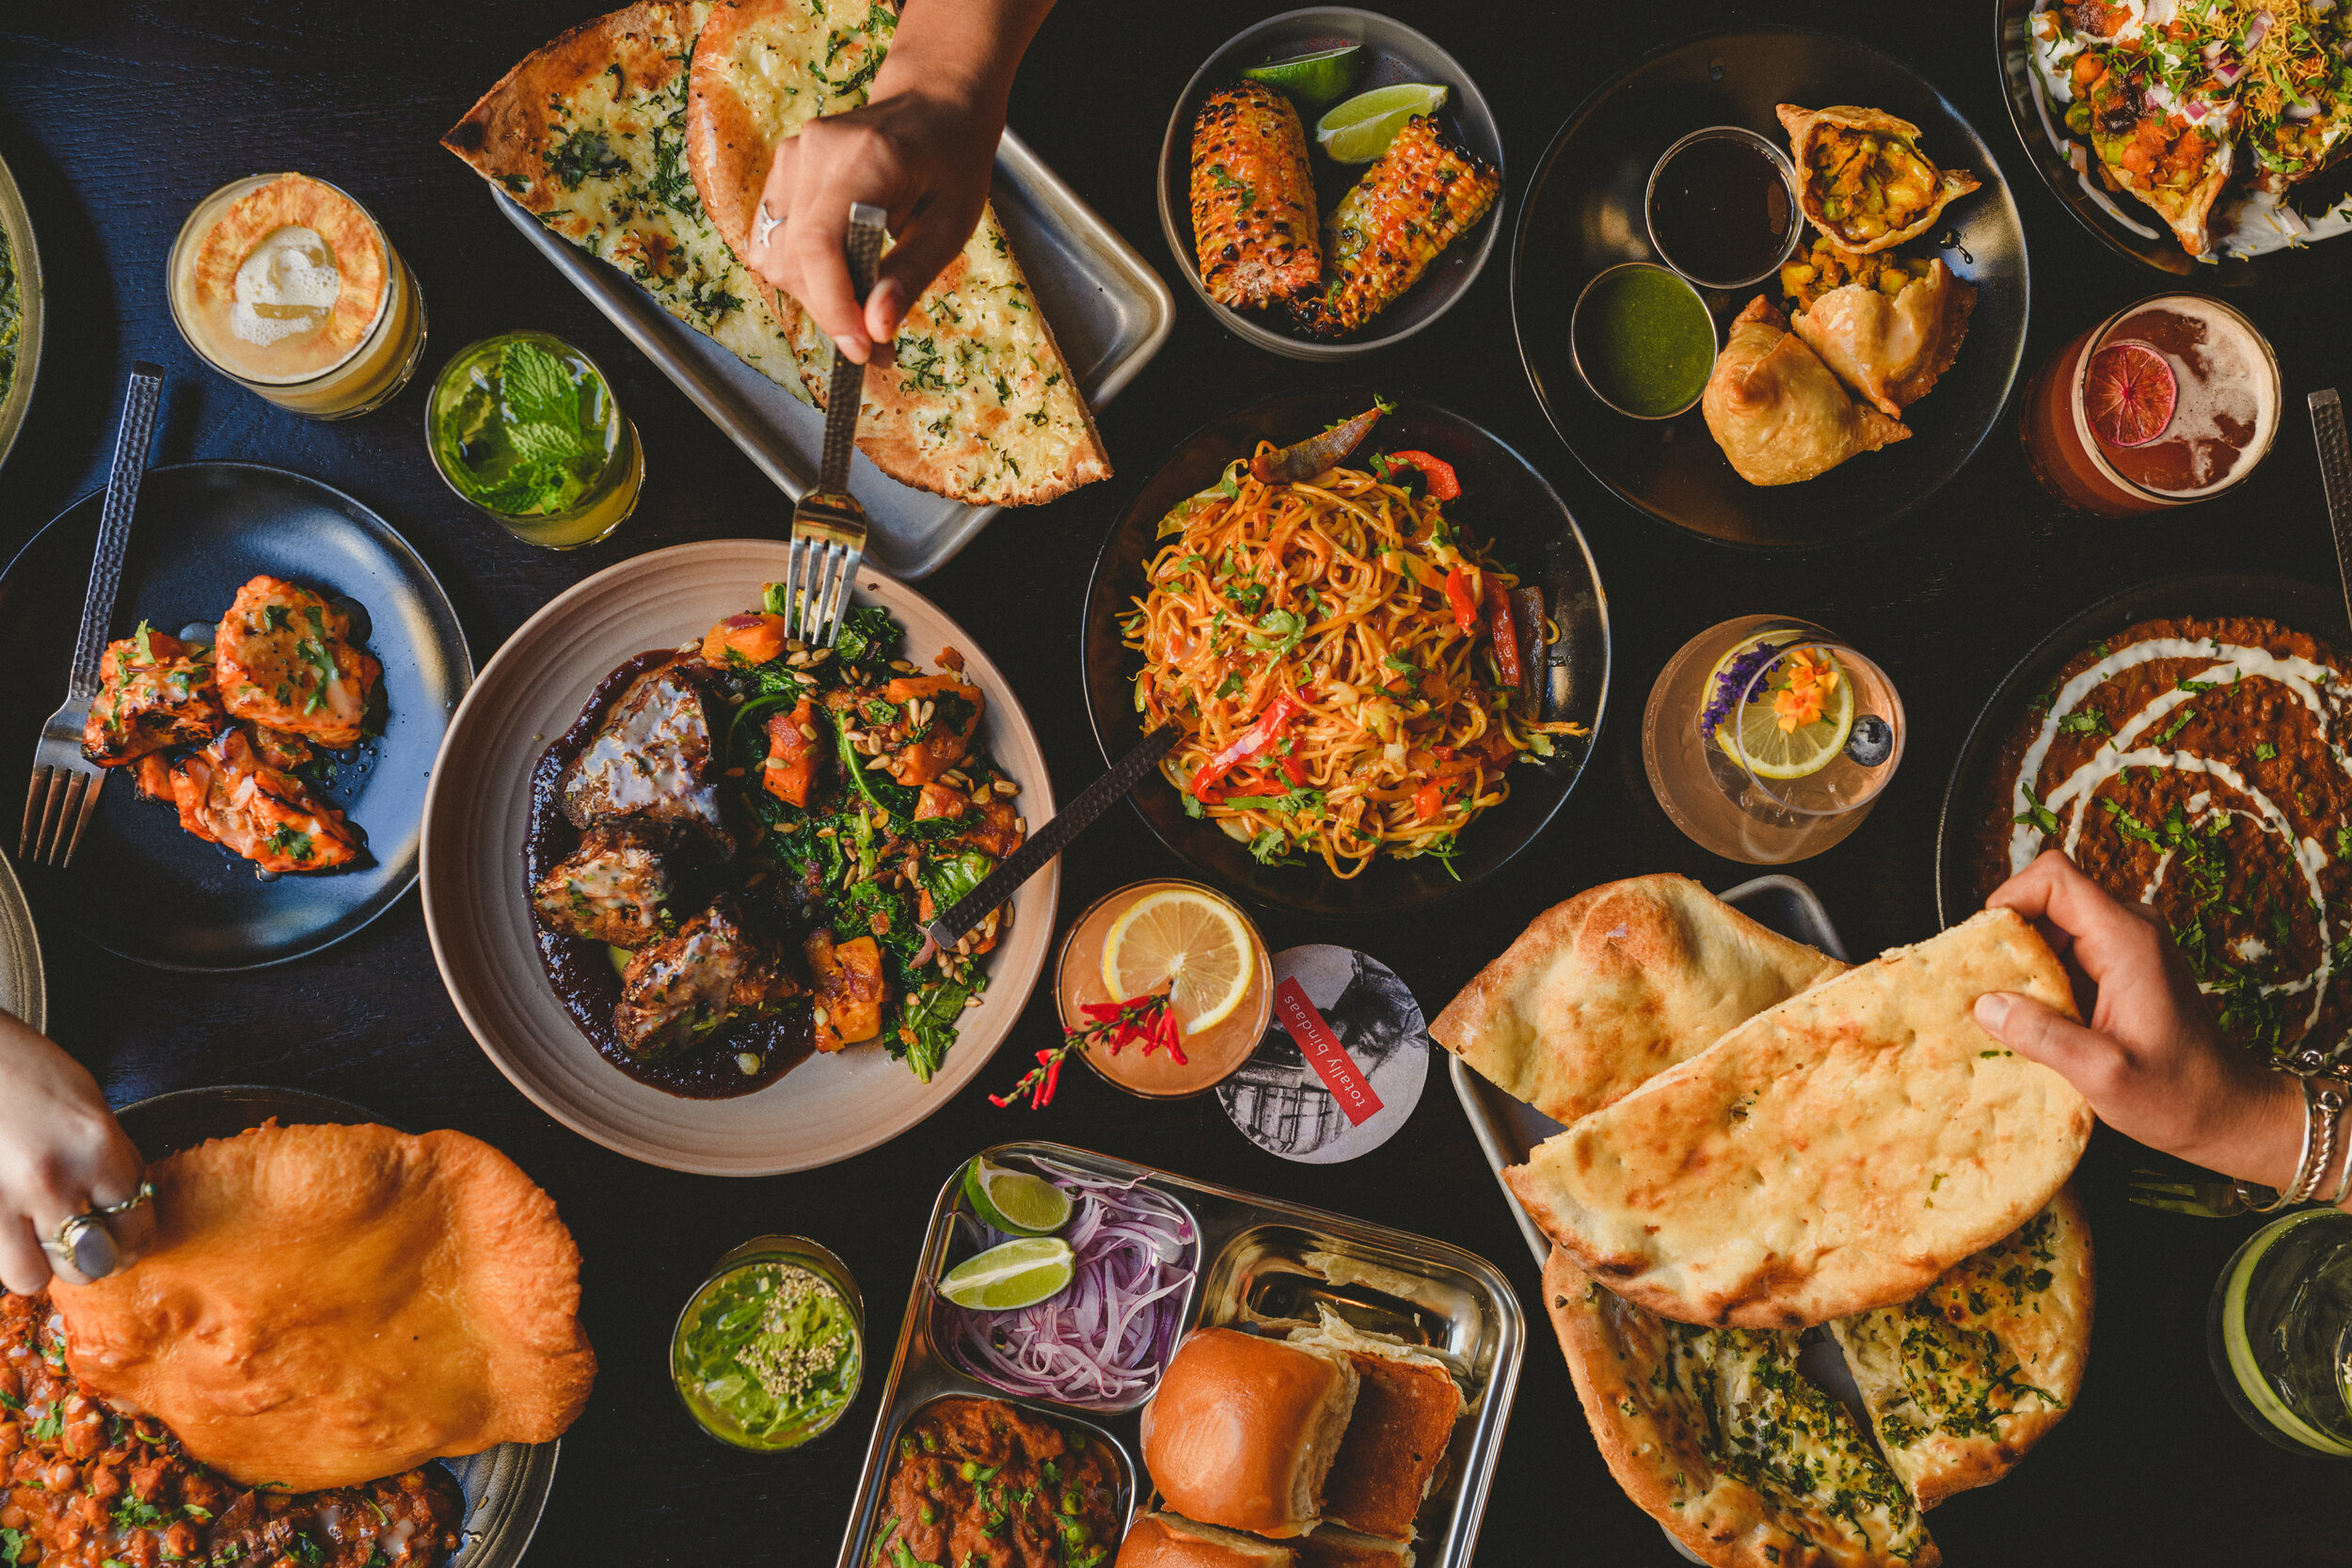 Top 27 Food Offers For December 2020: Offers On Zomato, Swiggy and More